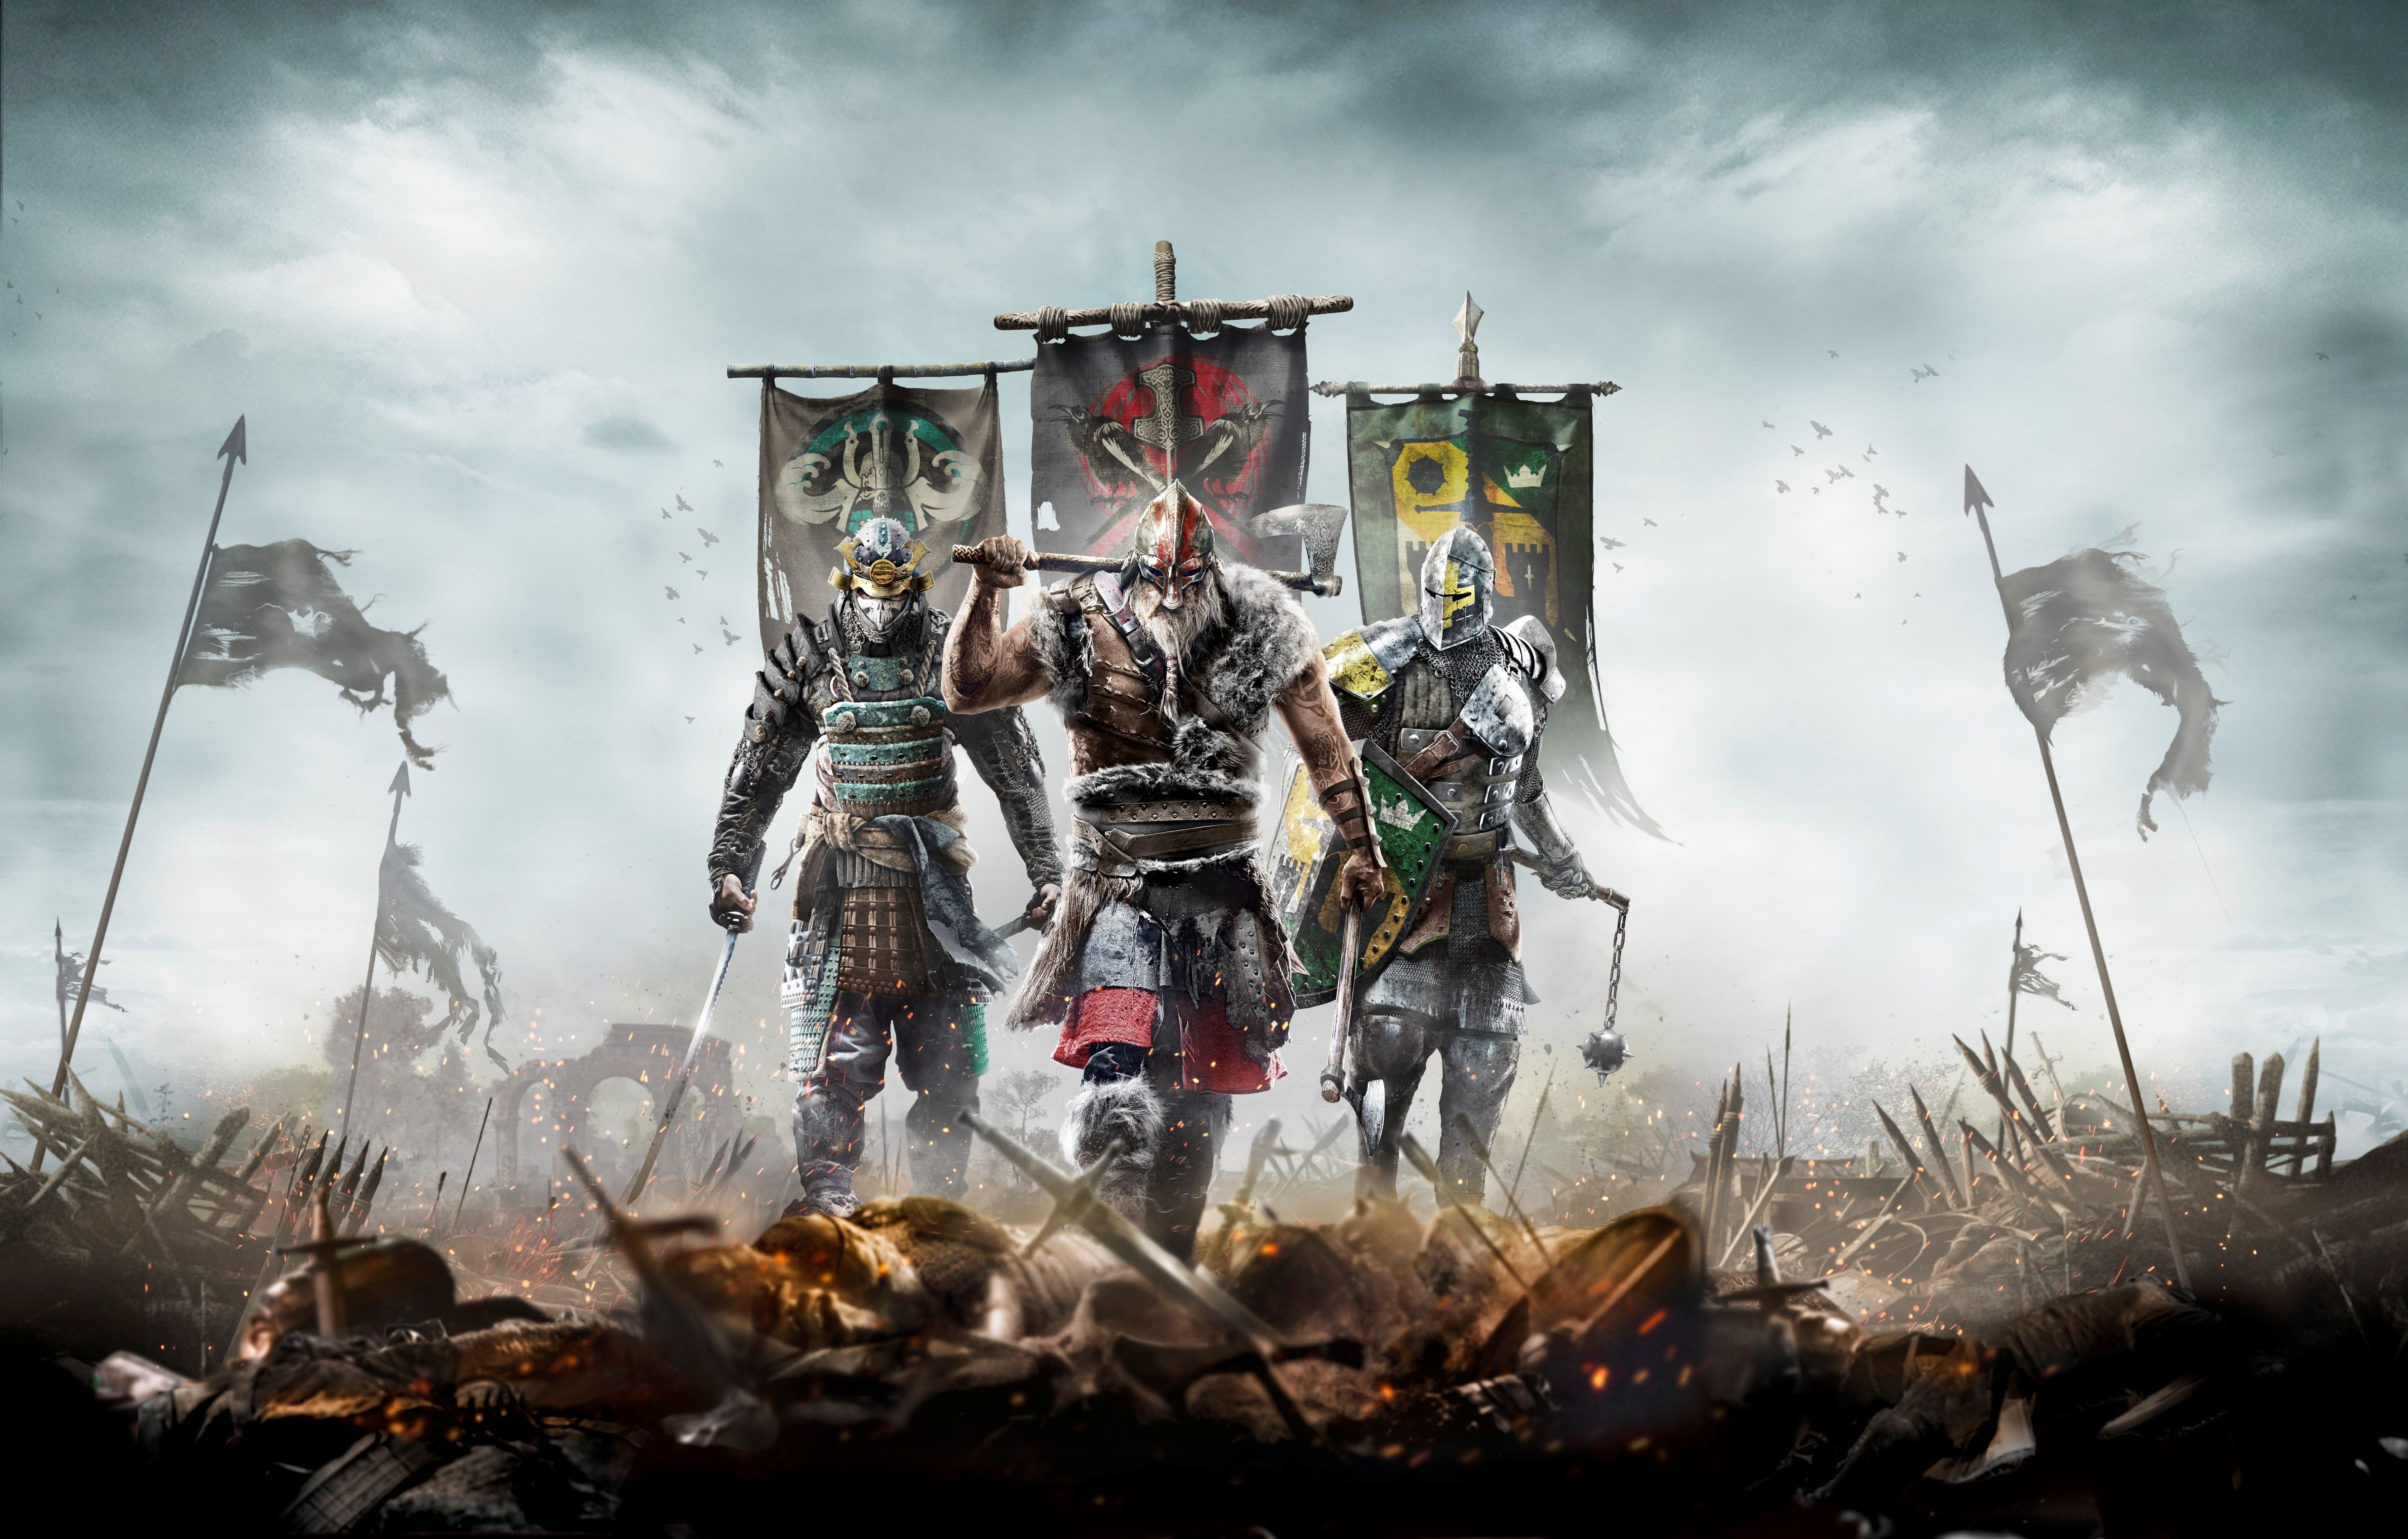 5866x3750 76 For Honor HD Wallpapers | Background Images - Wallpaper Abyss